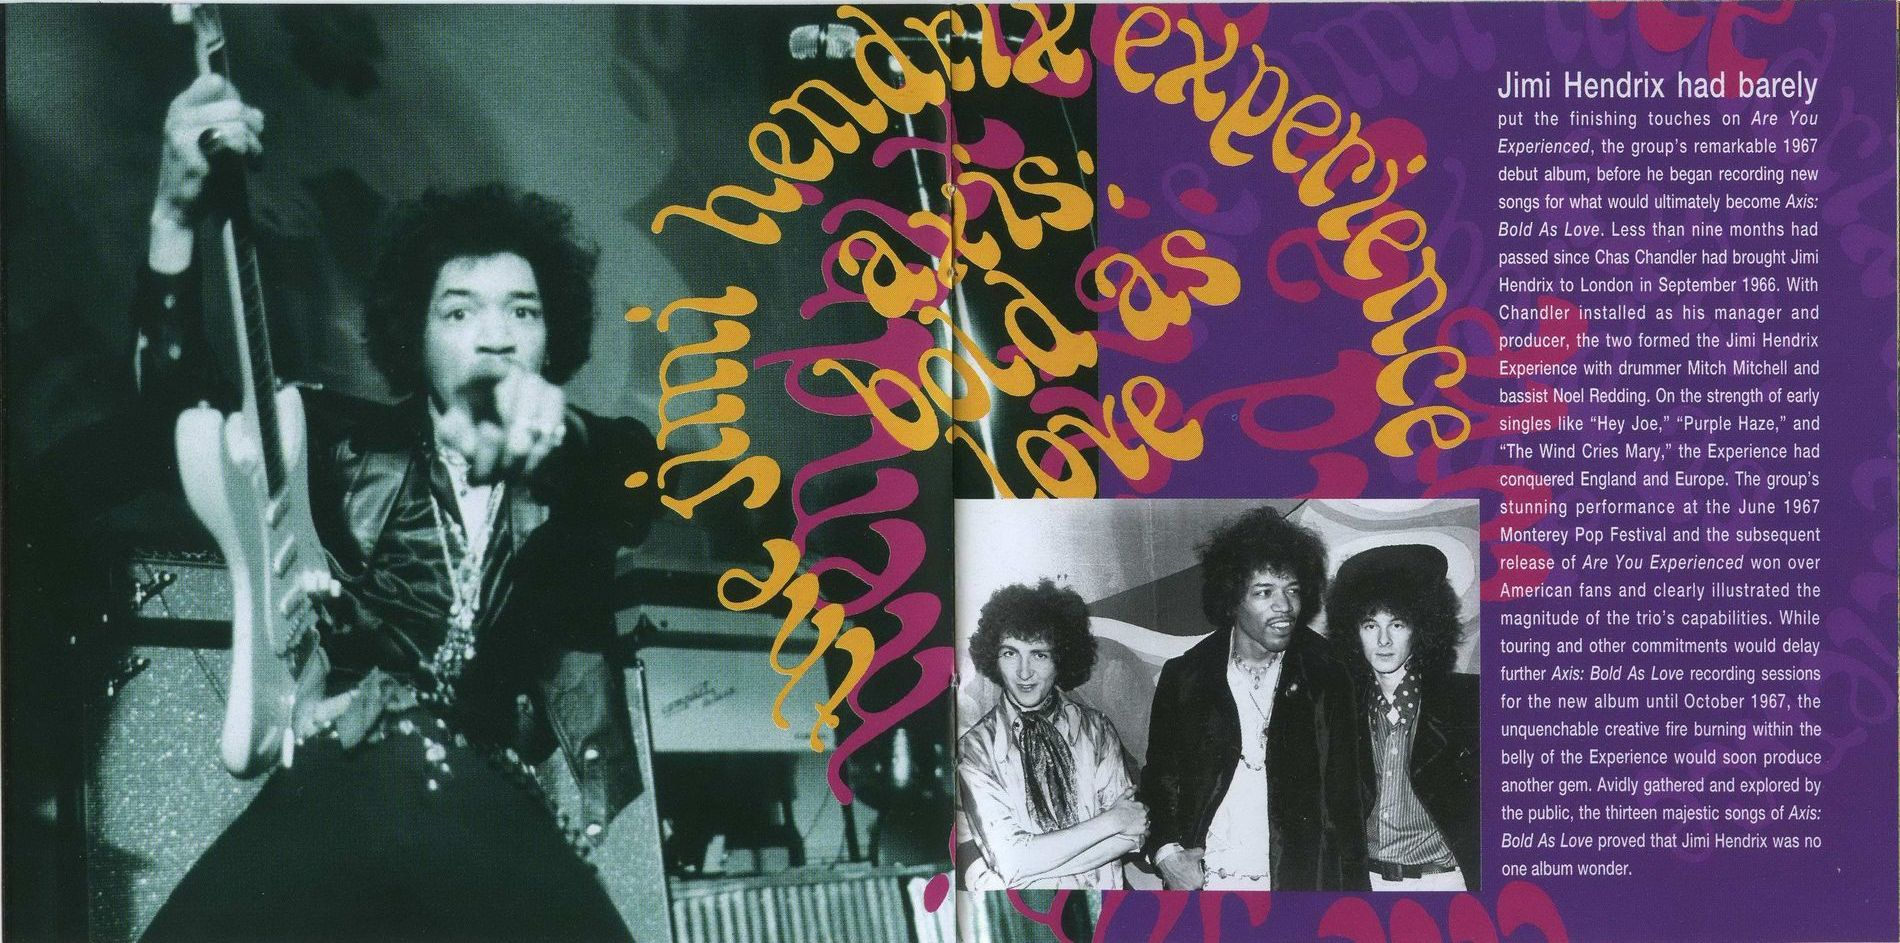 jimi hendrix first album in early 1967 The jimi hendrix experience was inducted into the rock and roll hall of fame in 1992 the jimi hendrix experience released their first album in 1967 titled are you experienced after jimi's death in 1970, 12 albums were released under his name from 1971 to 2013.